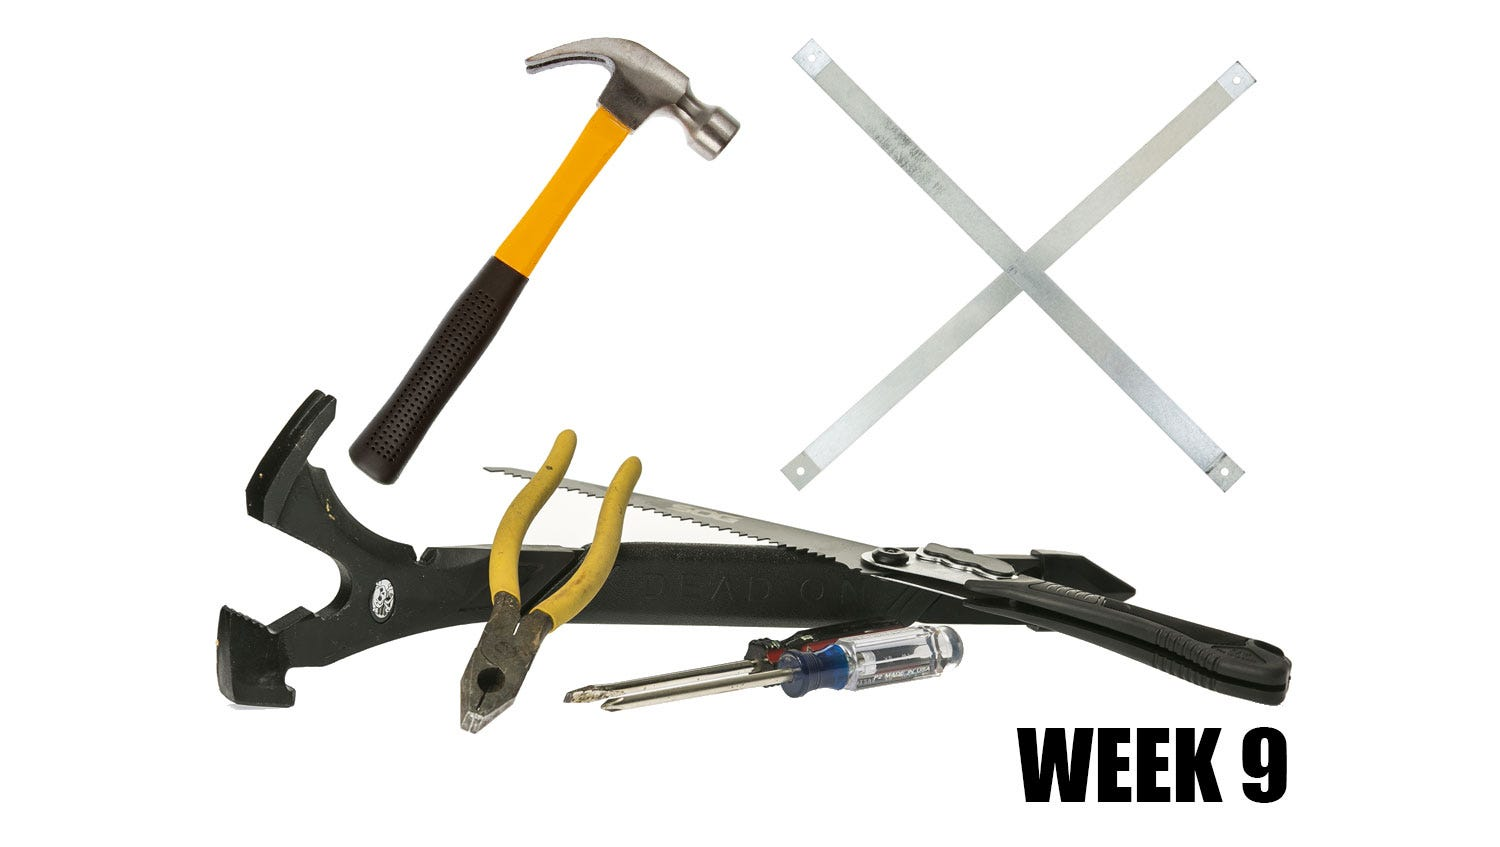 Week 9: Pile on the hammers, pliers and screw drivers